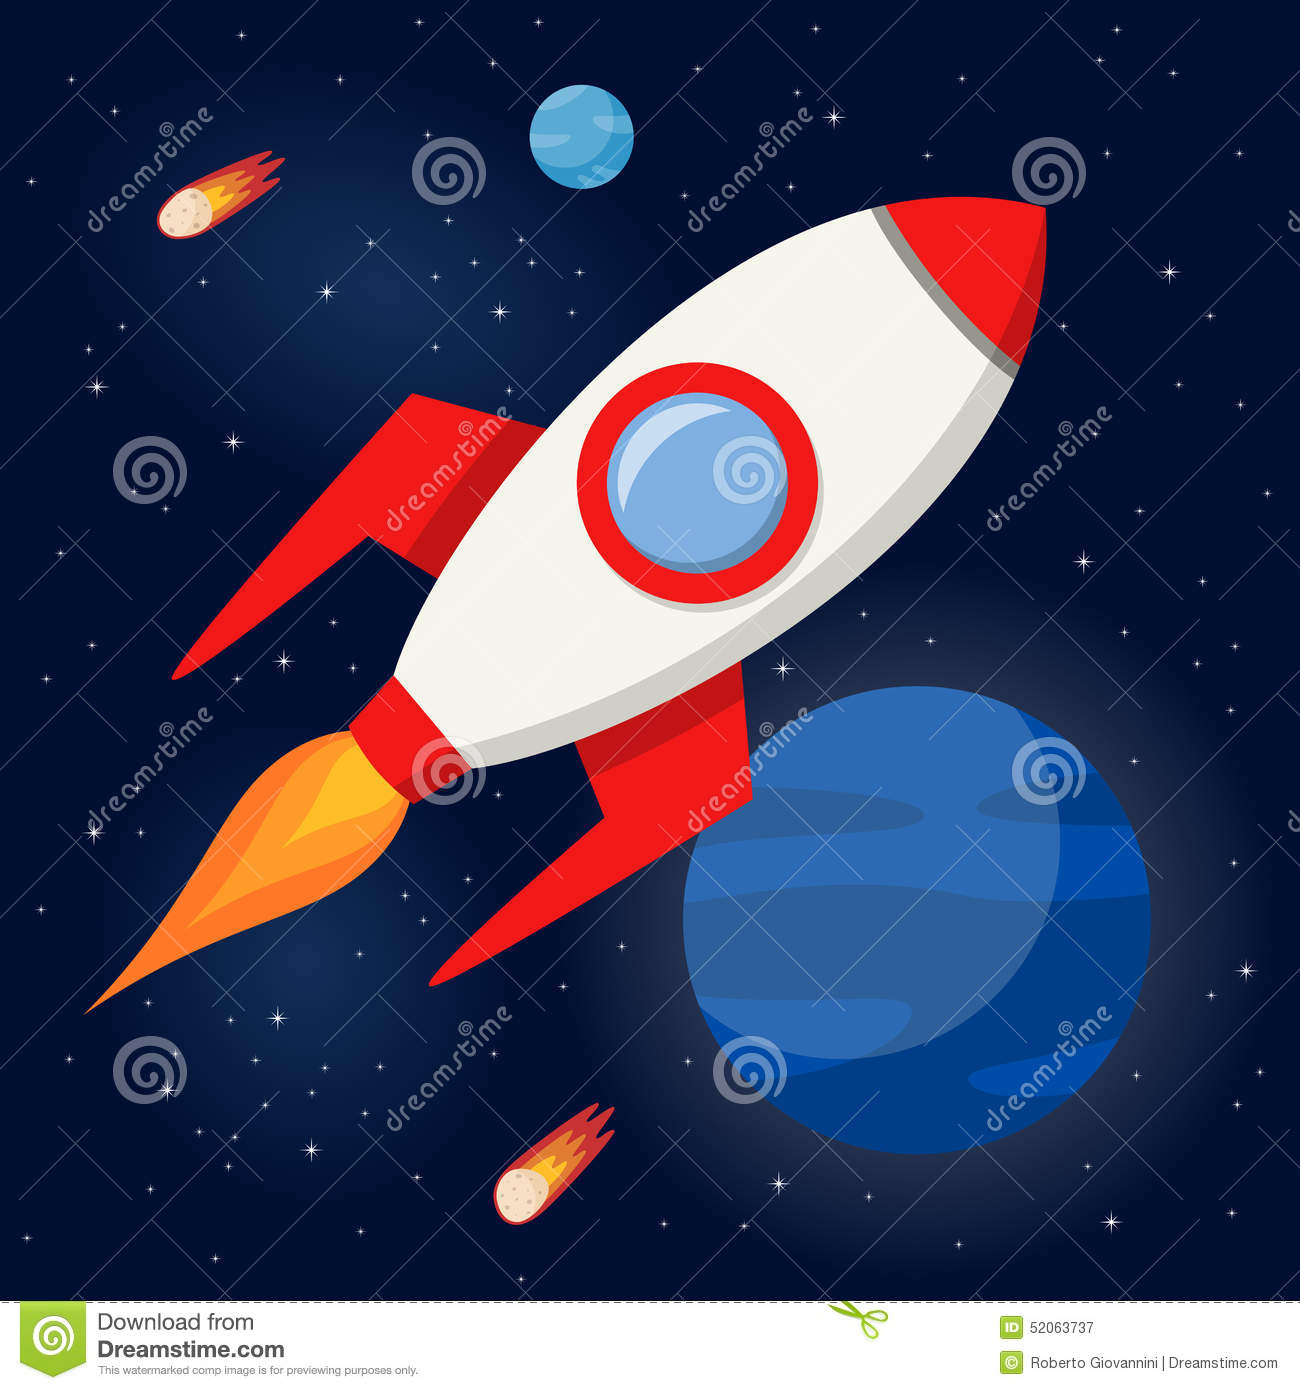 outer space with rocket ships - photo #13